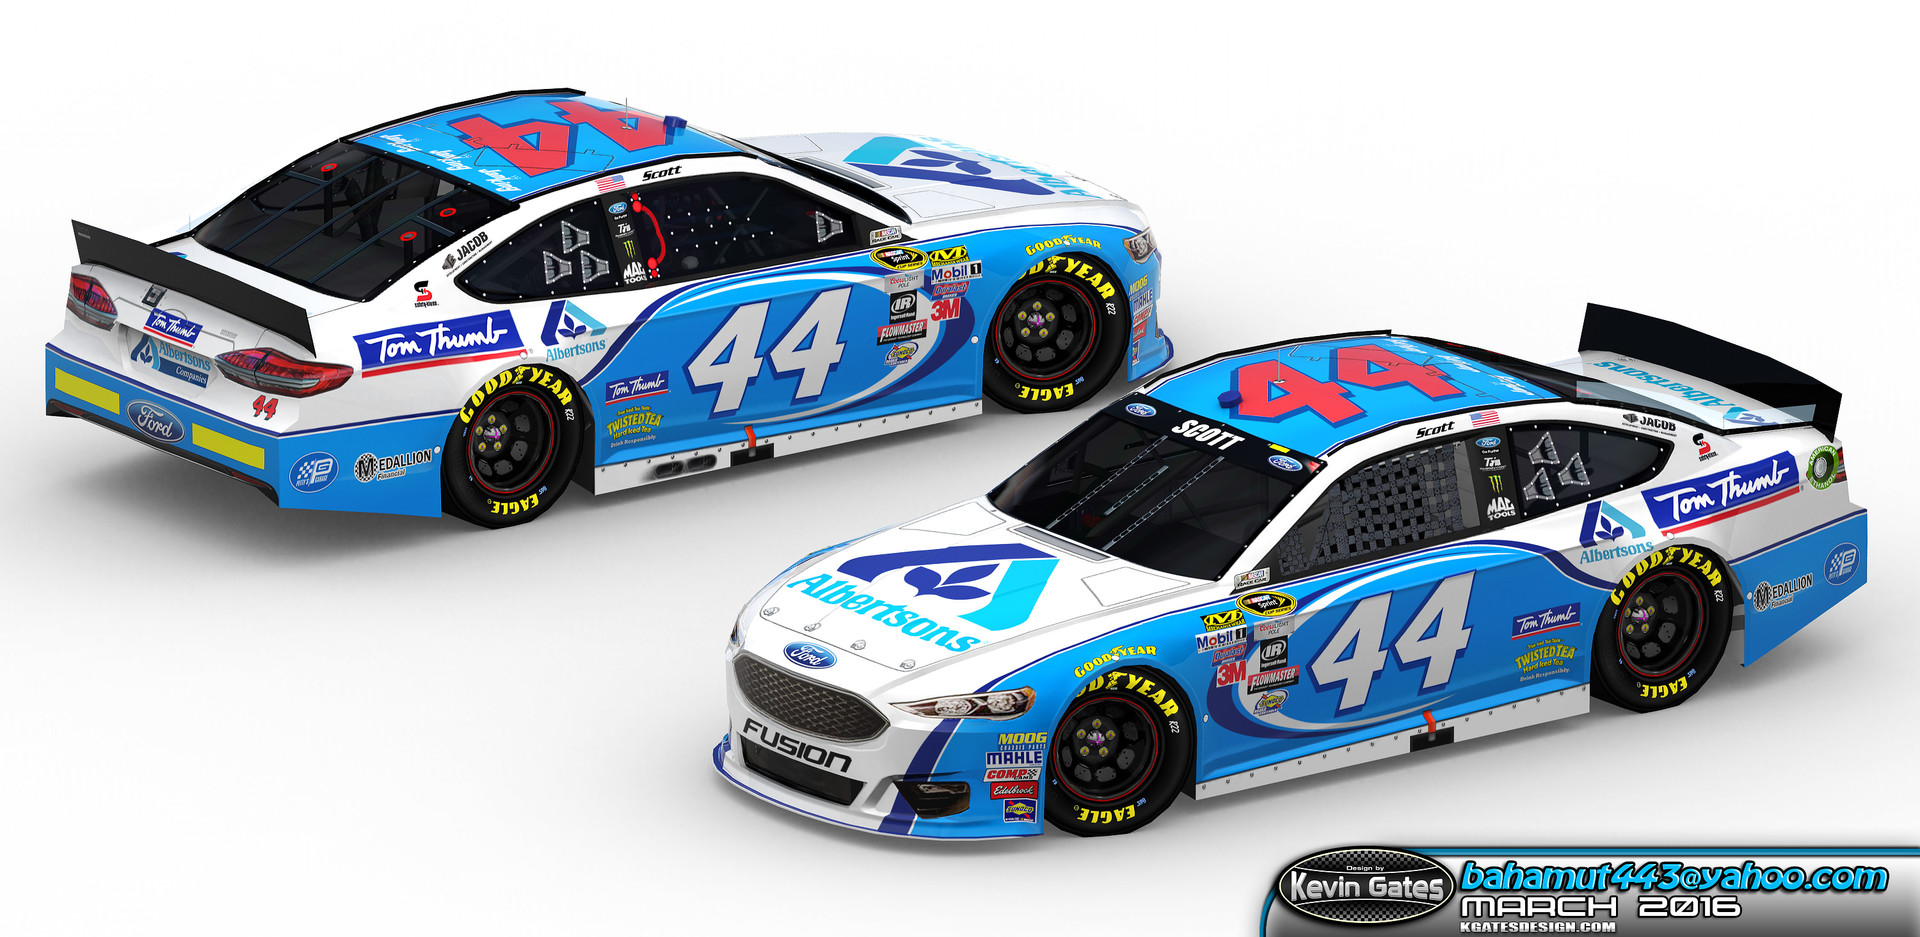 Original Autodesk 3DS Max render of the finalized 2016 #44 Albertsons / Tom Thumb Ford Fusion driven by NASCAR Sprint Cup Series driver Brian Scott of Richard Petty Motorsports